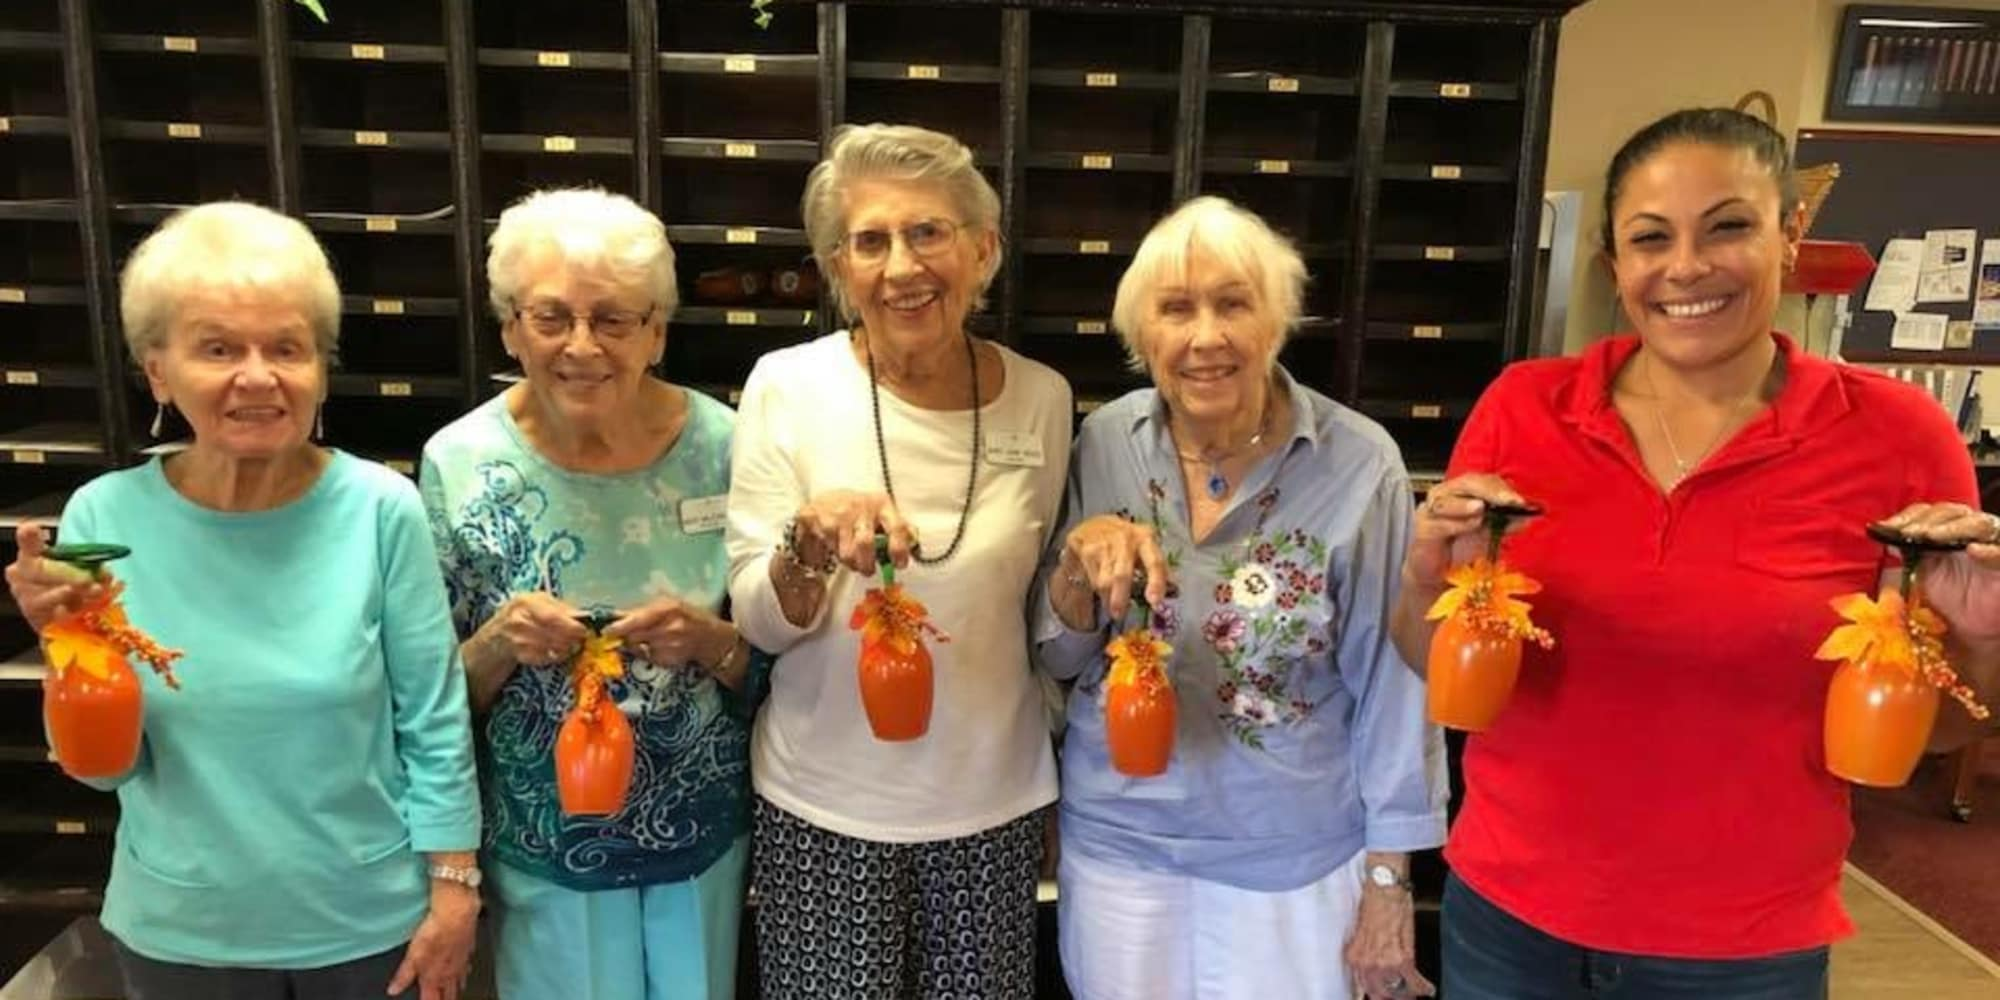 Residents holding decorated cups at Sanford Estates Gracious Retirement Living in Roswell, Georgia